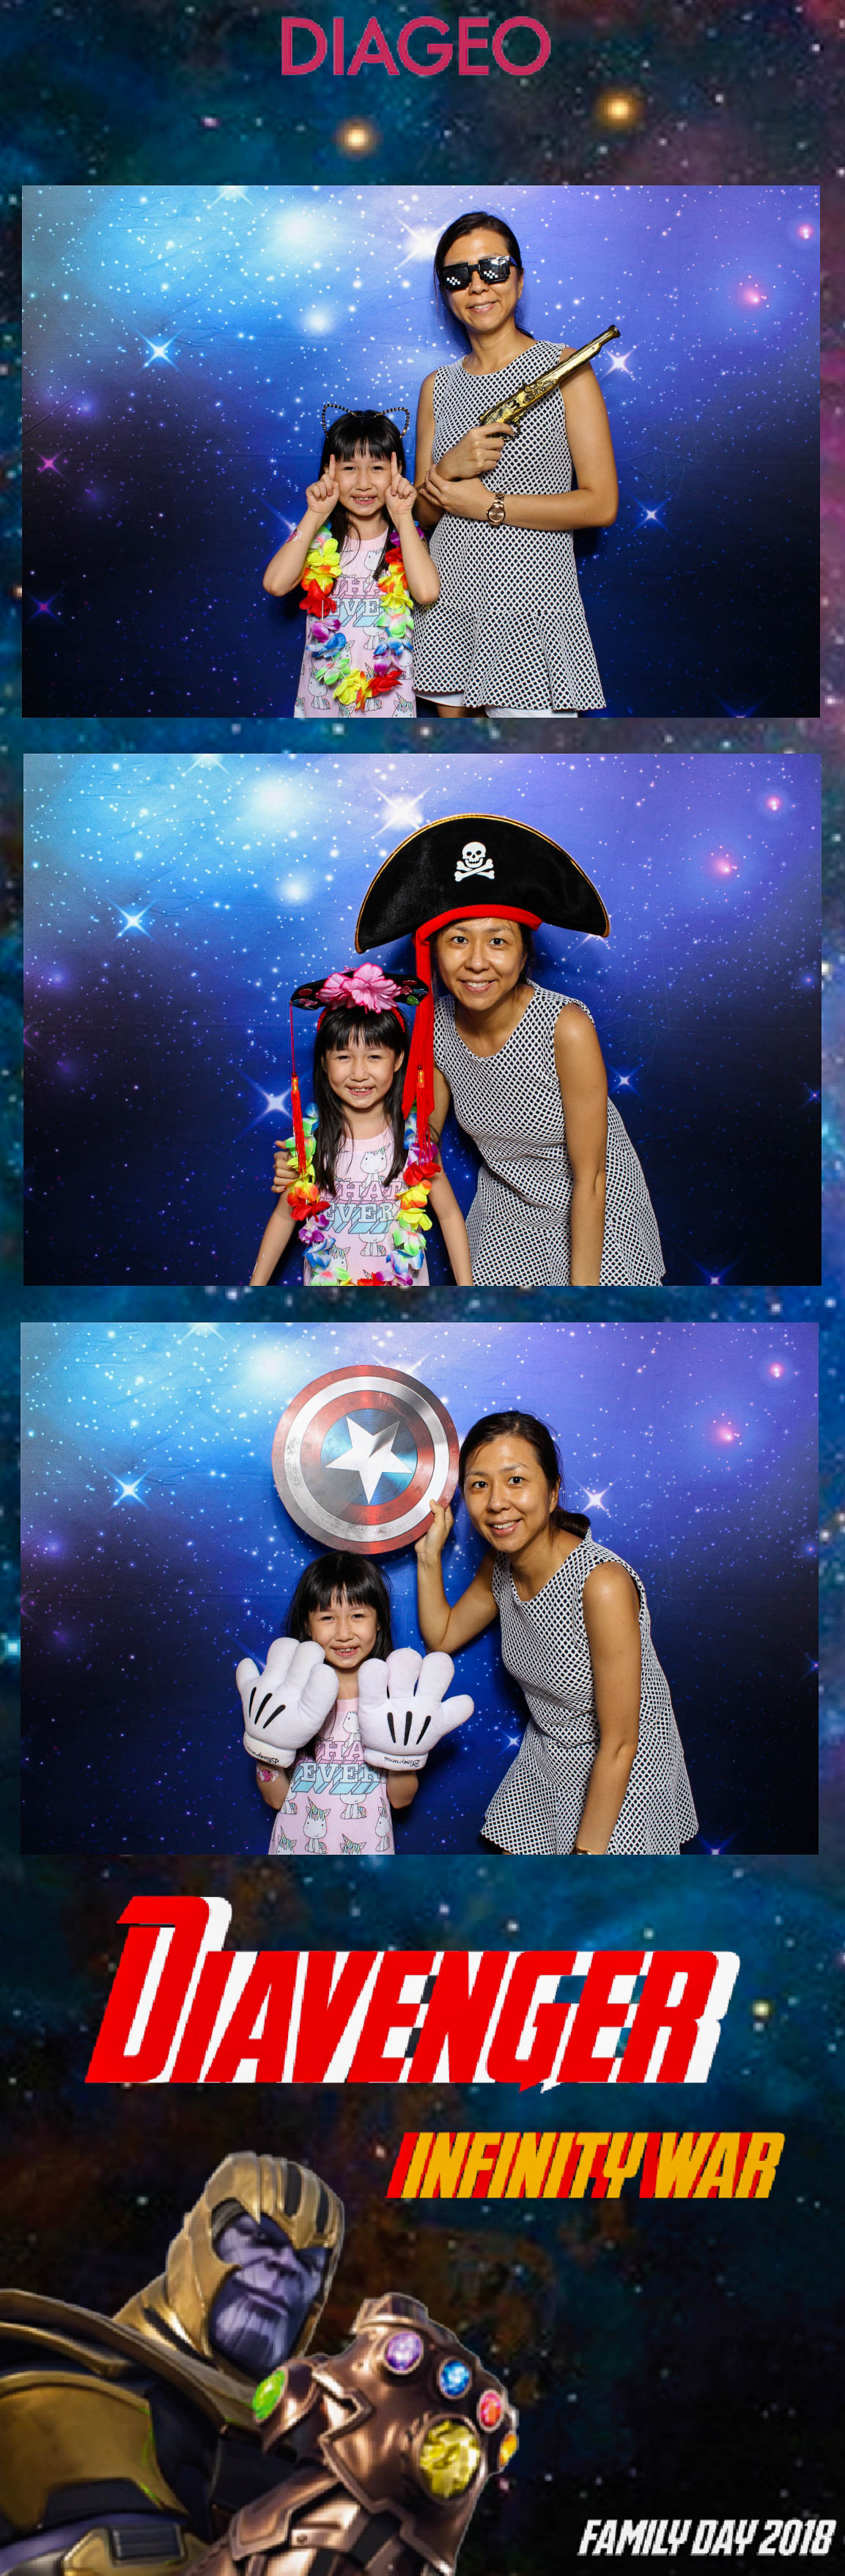 Photo booth 2306-8